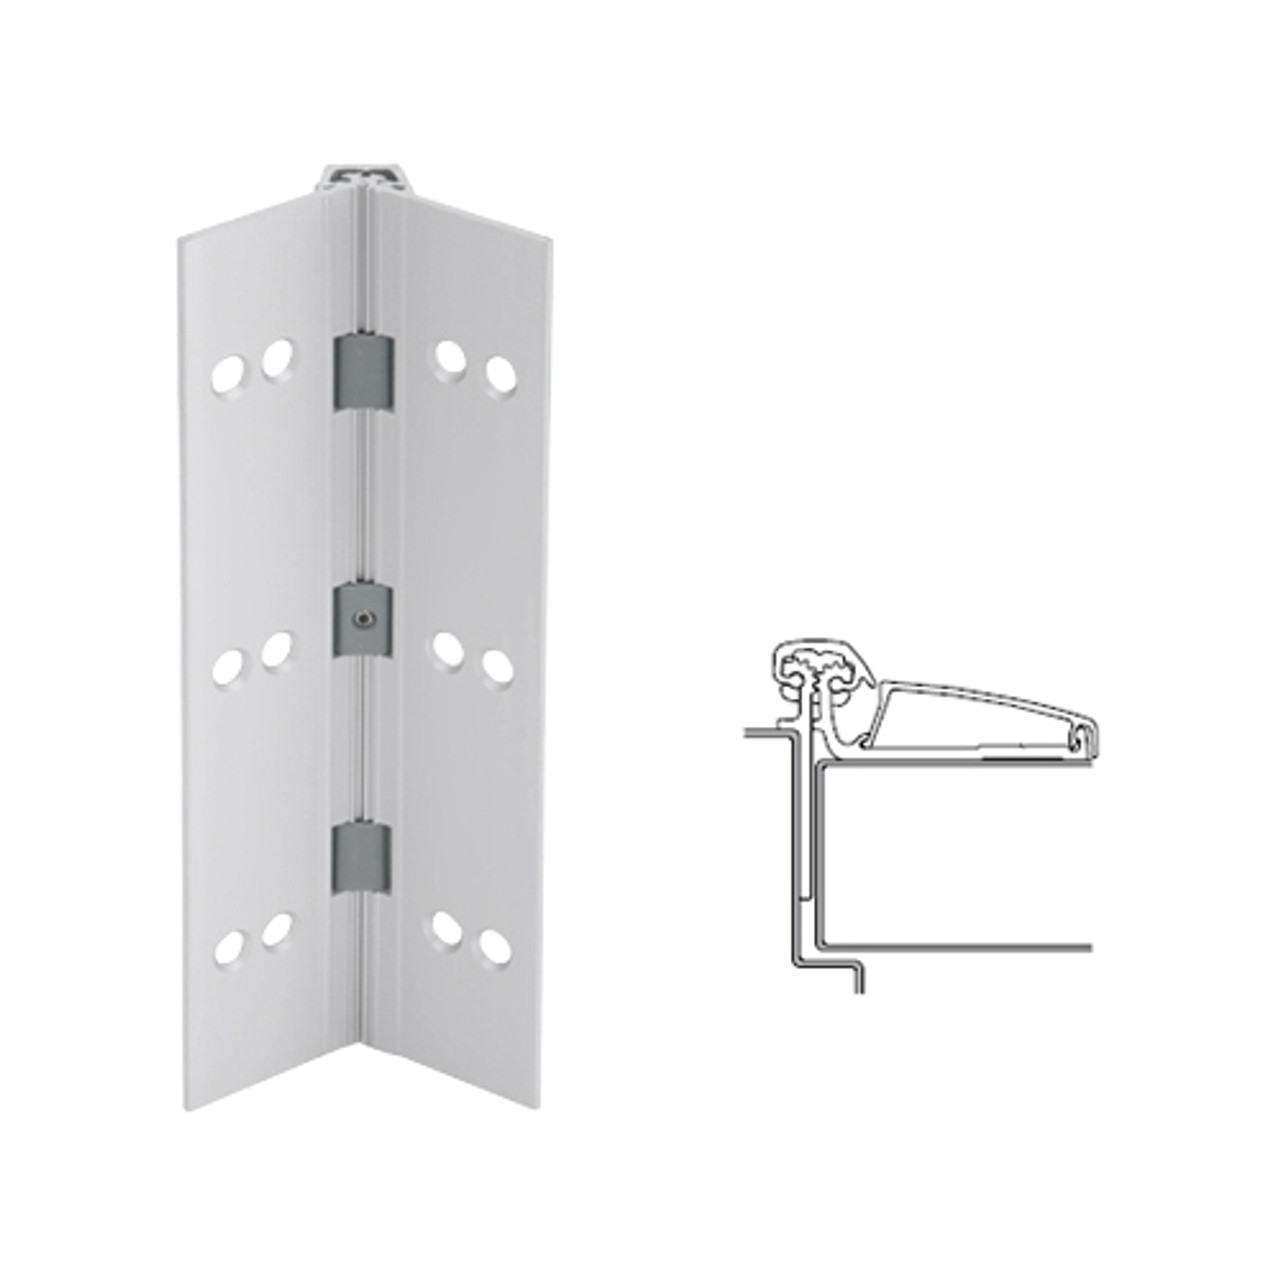 045XY-US28-95-SECHM IVES Adjustable Half Surface Continuous Geared Hinges with Security Screws - Hex Pin Drive in Satin Aluminum